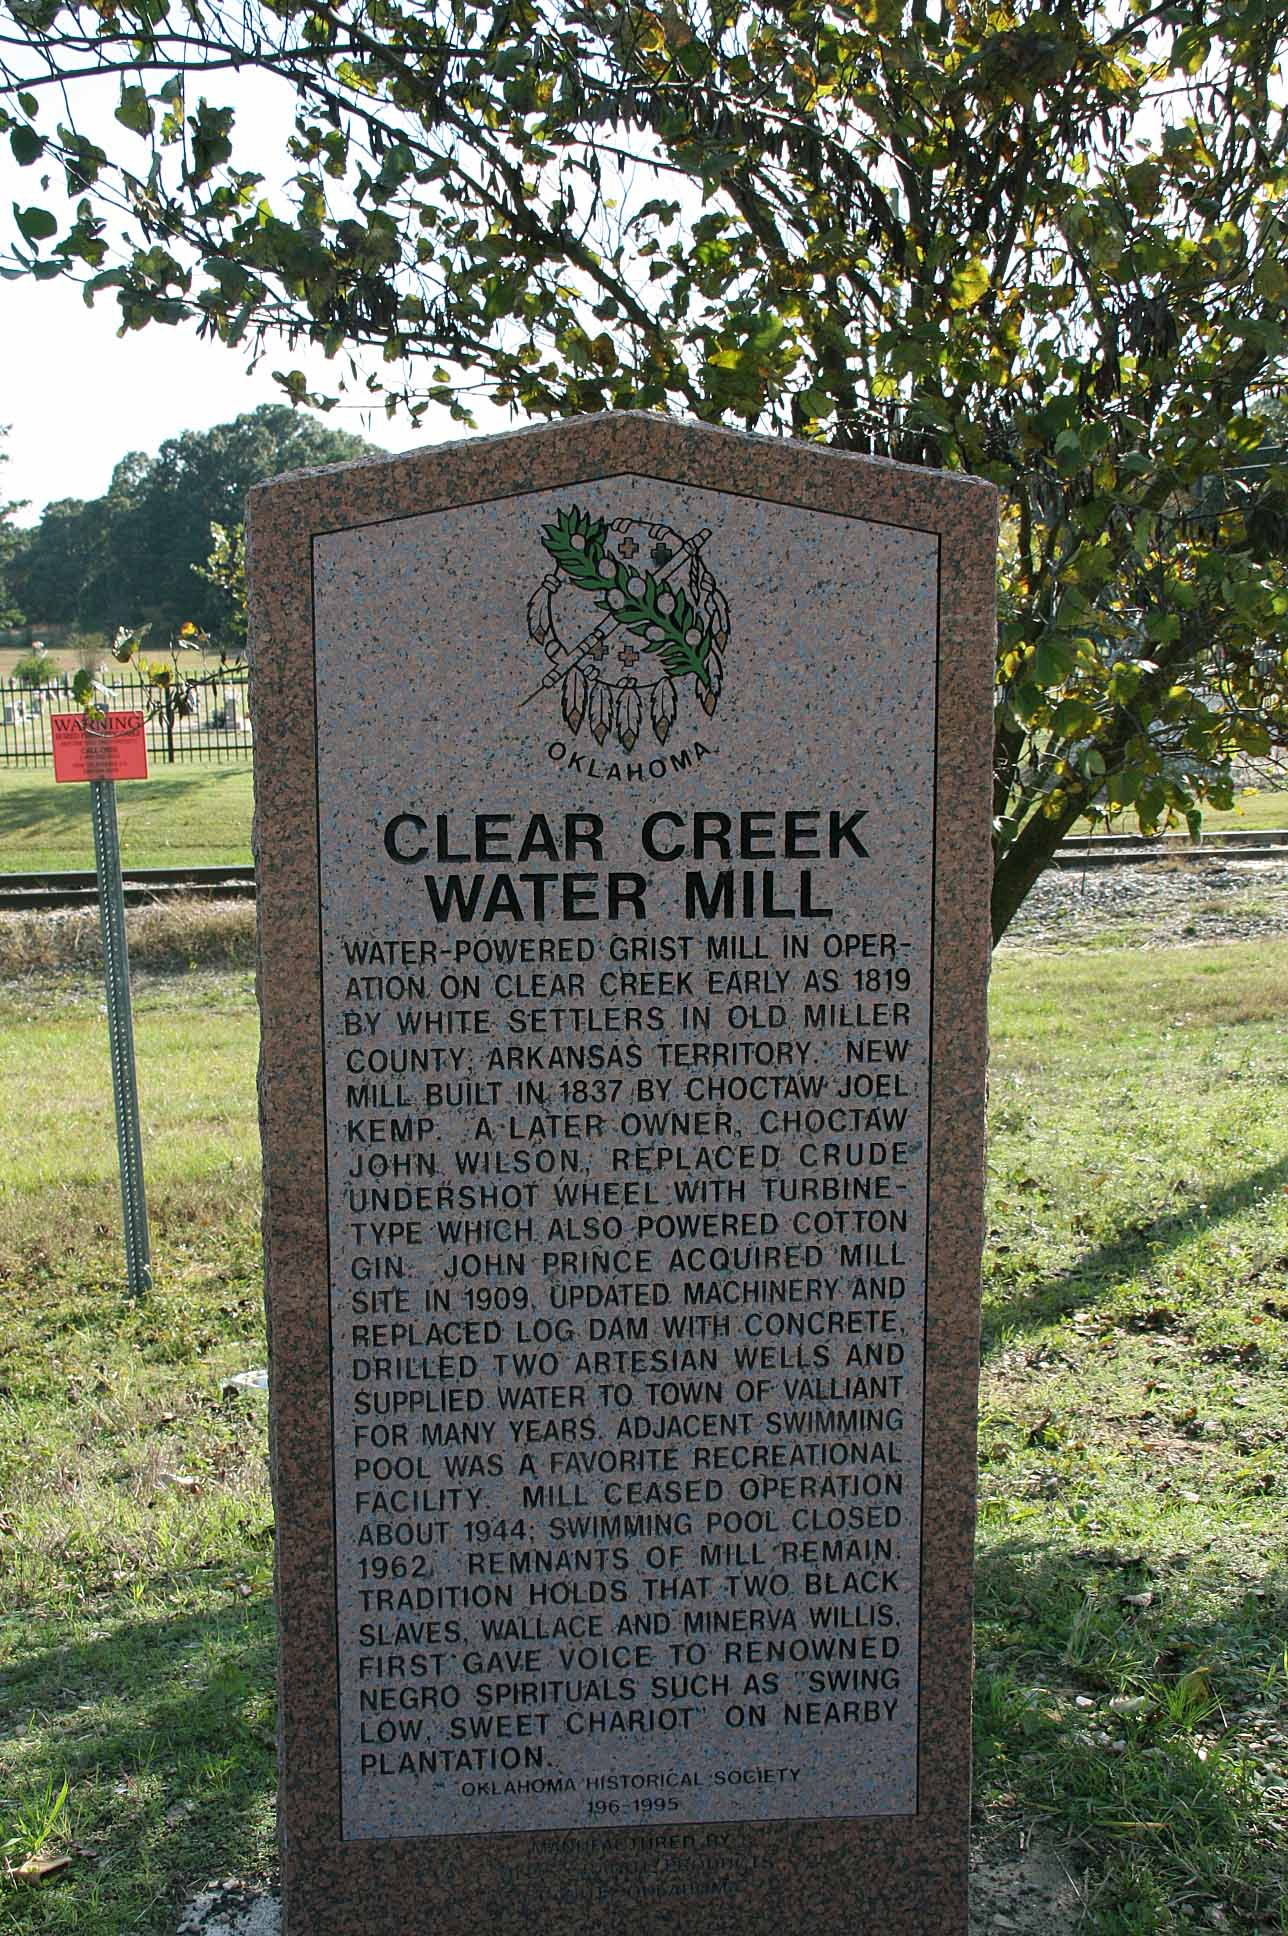 Exploring Oklahoma History: Clear Creek Water Mill